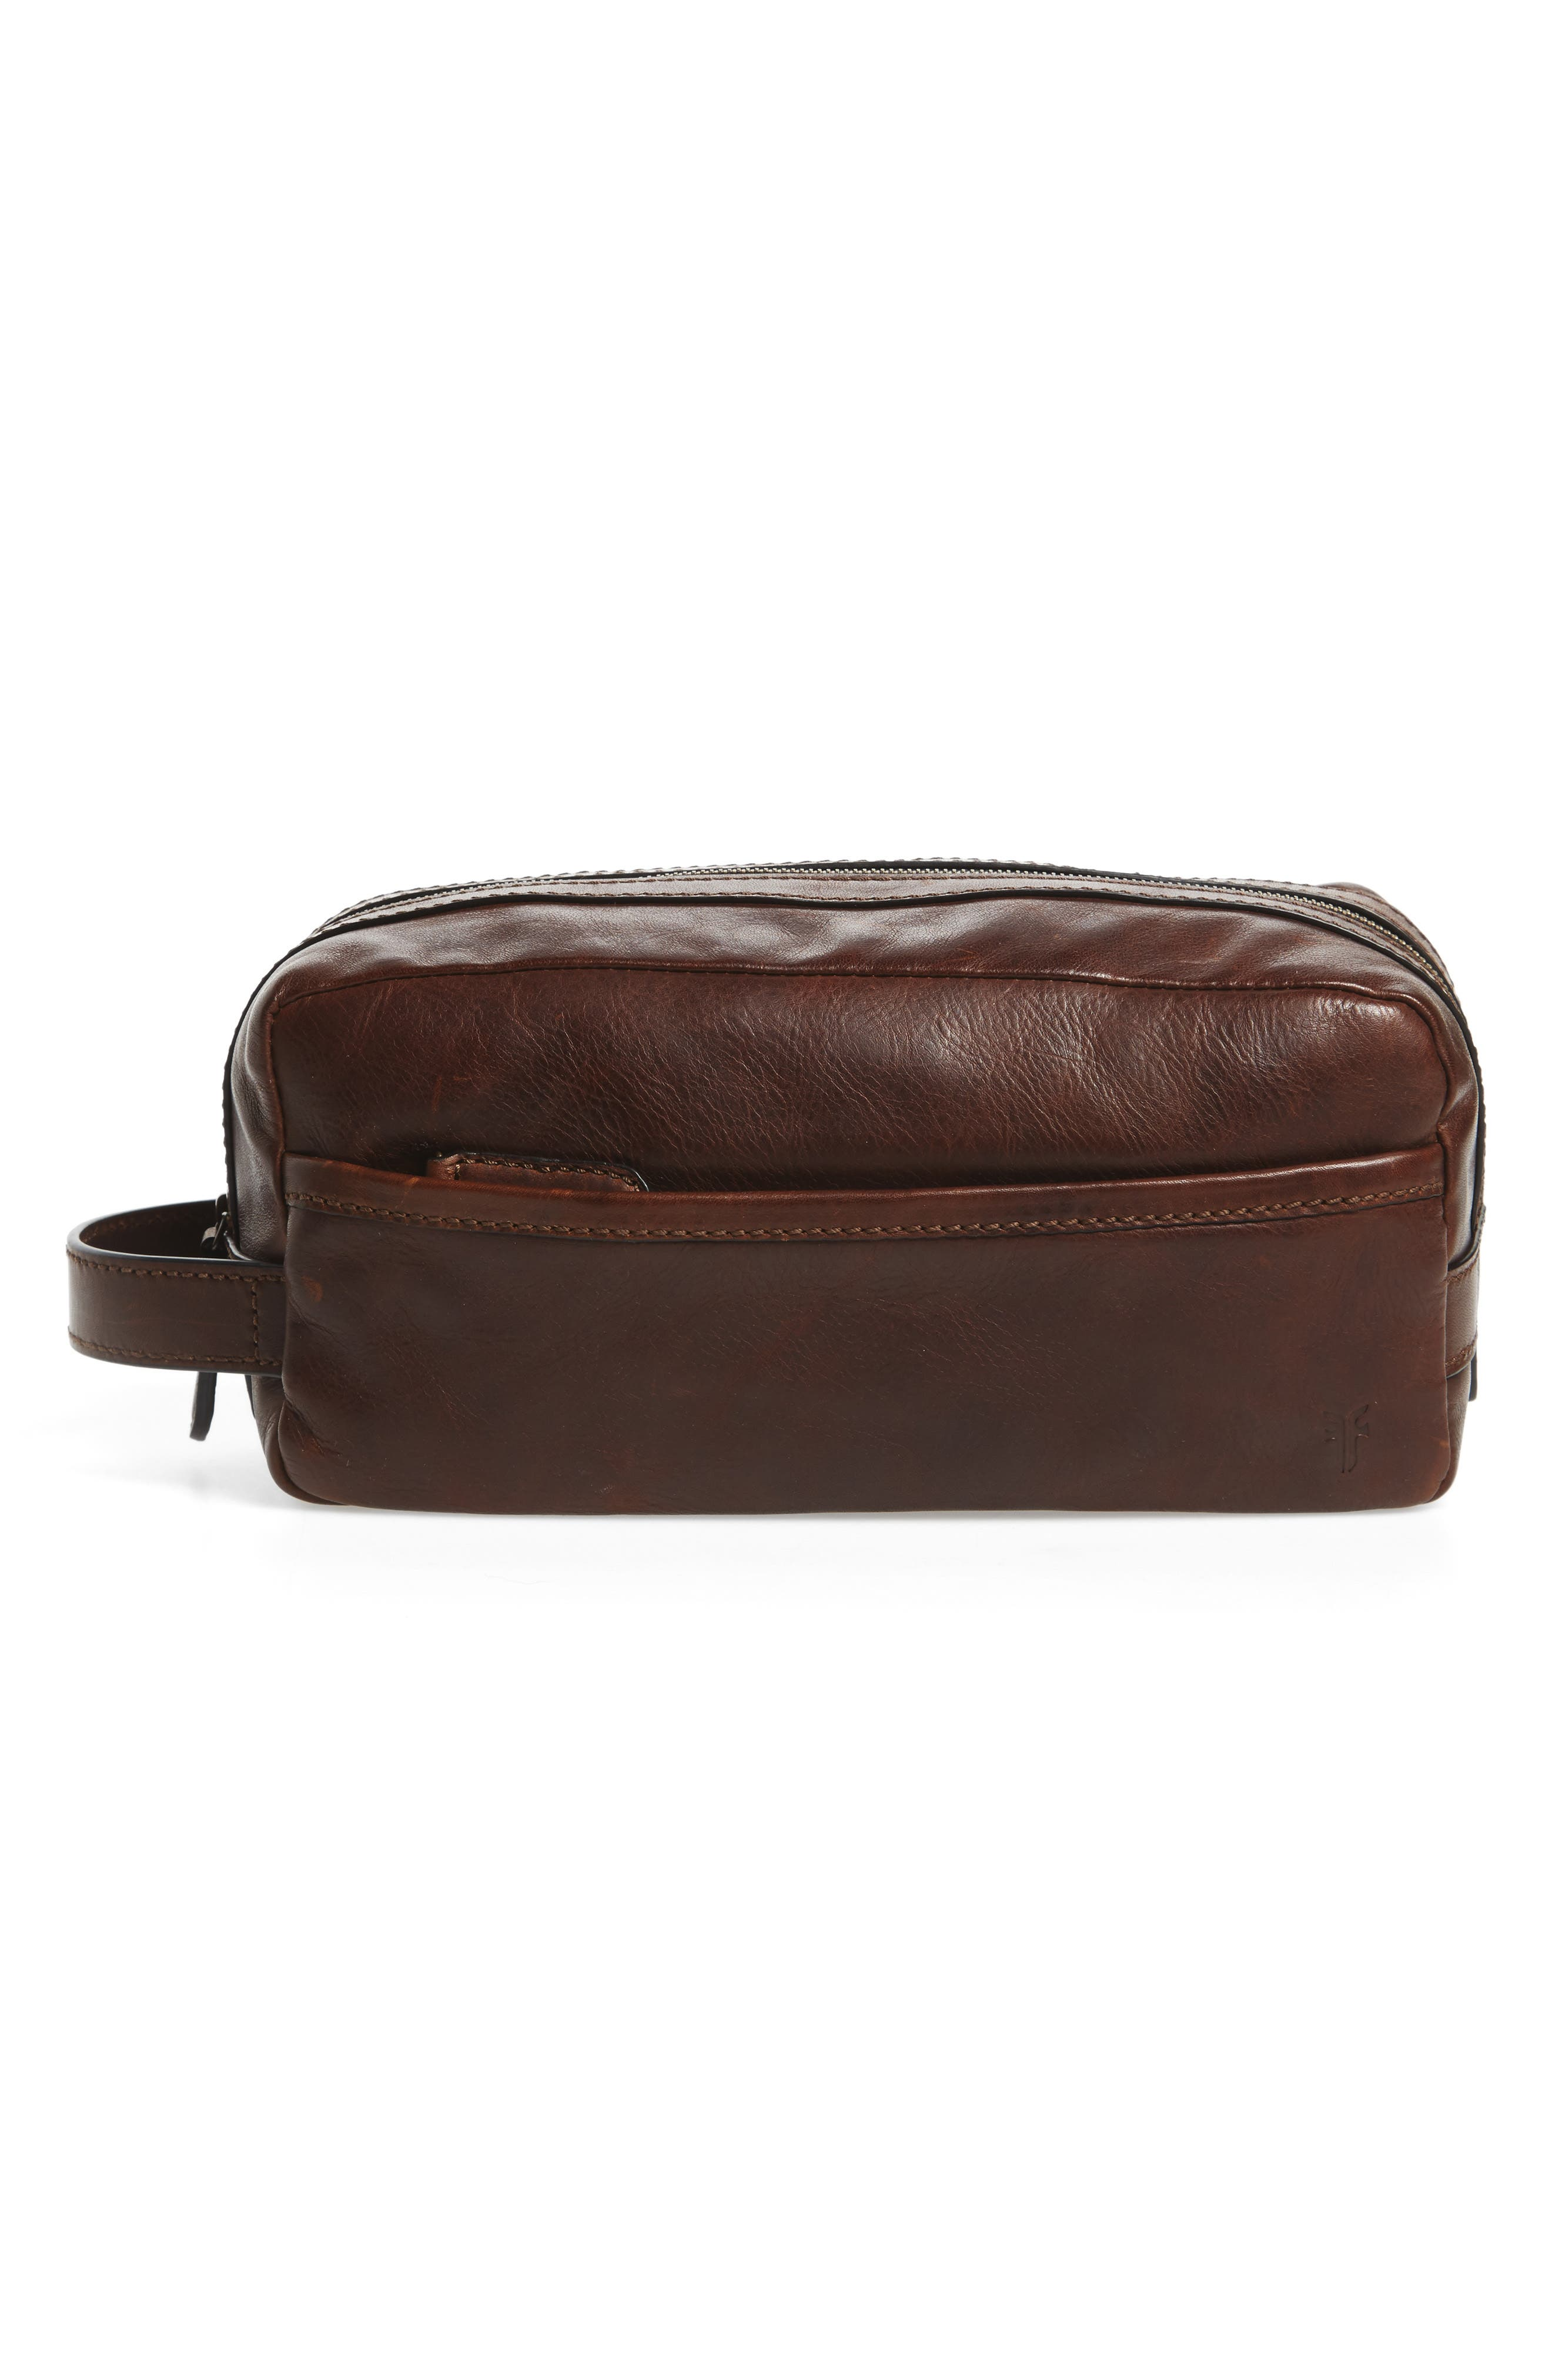 'Logan' Leather Travel Kit,                             Main thumbnail 1, color,                             Dark Brown